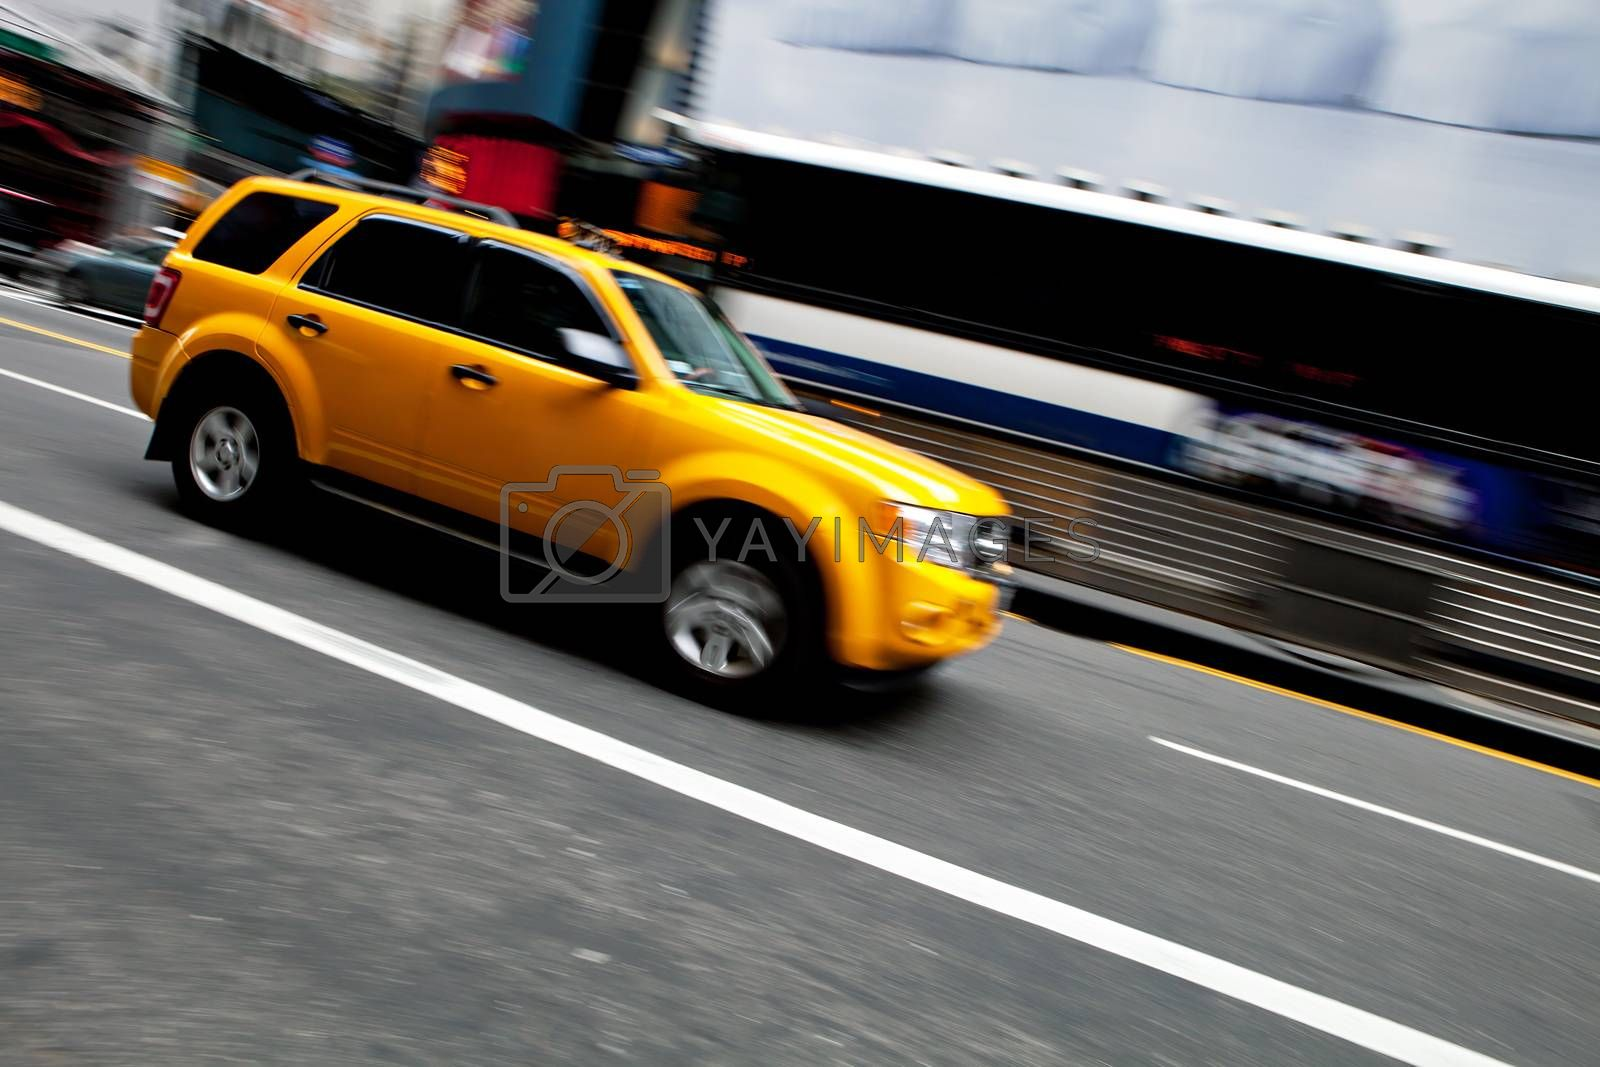 Speeding NYC Taxi SUV by graficallyminded